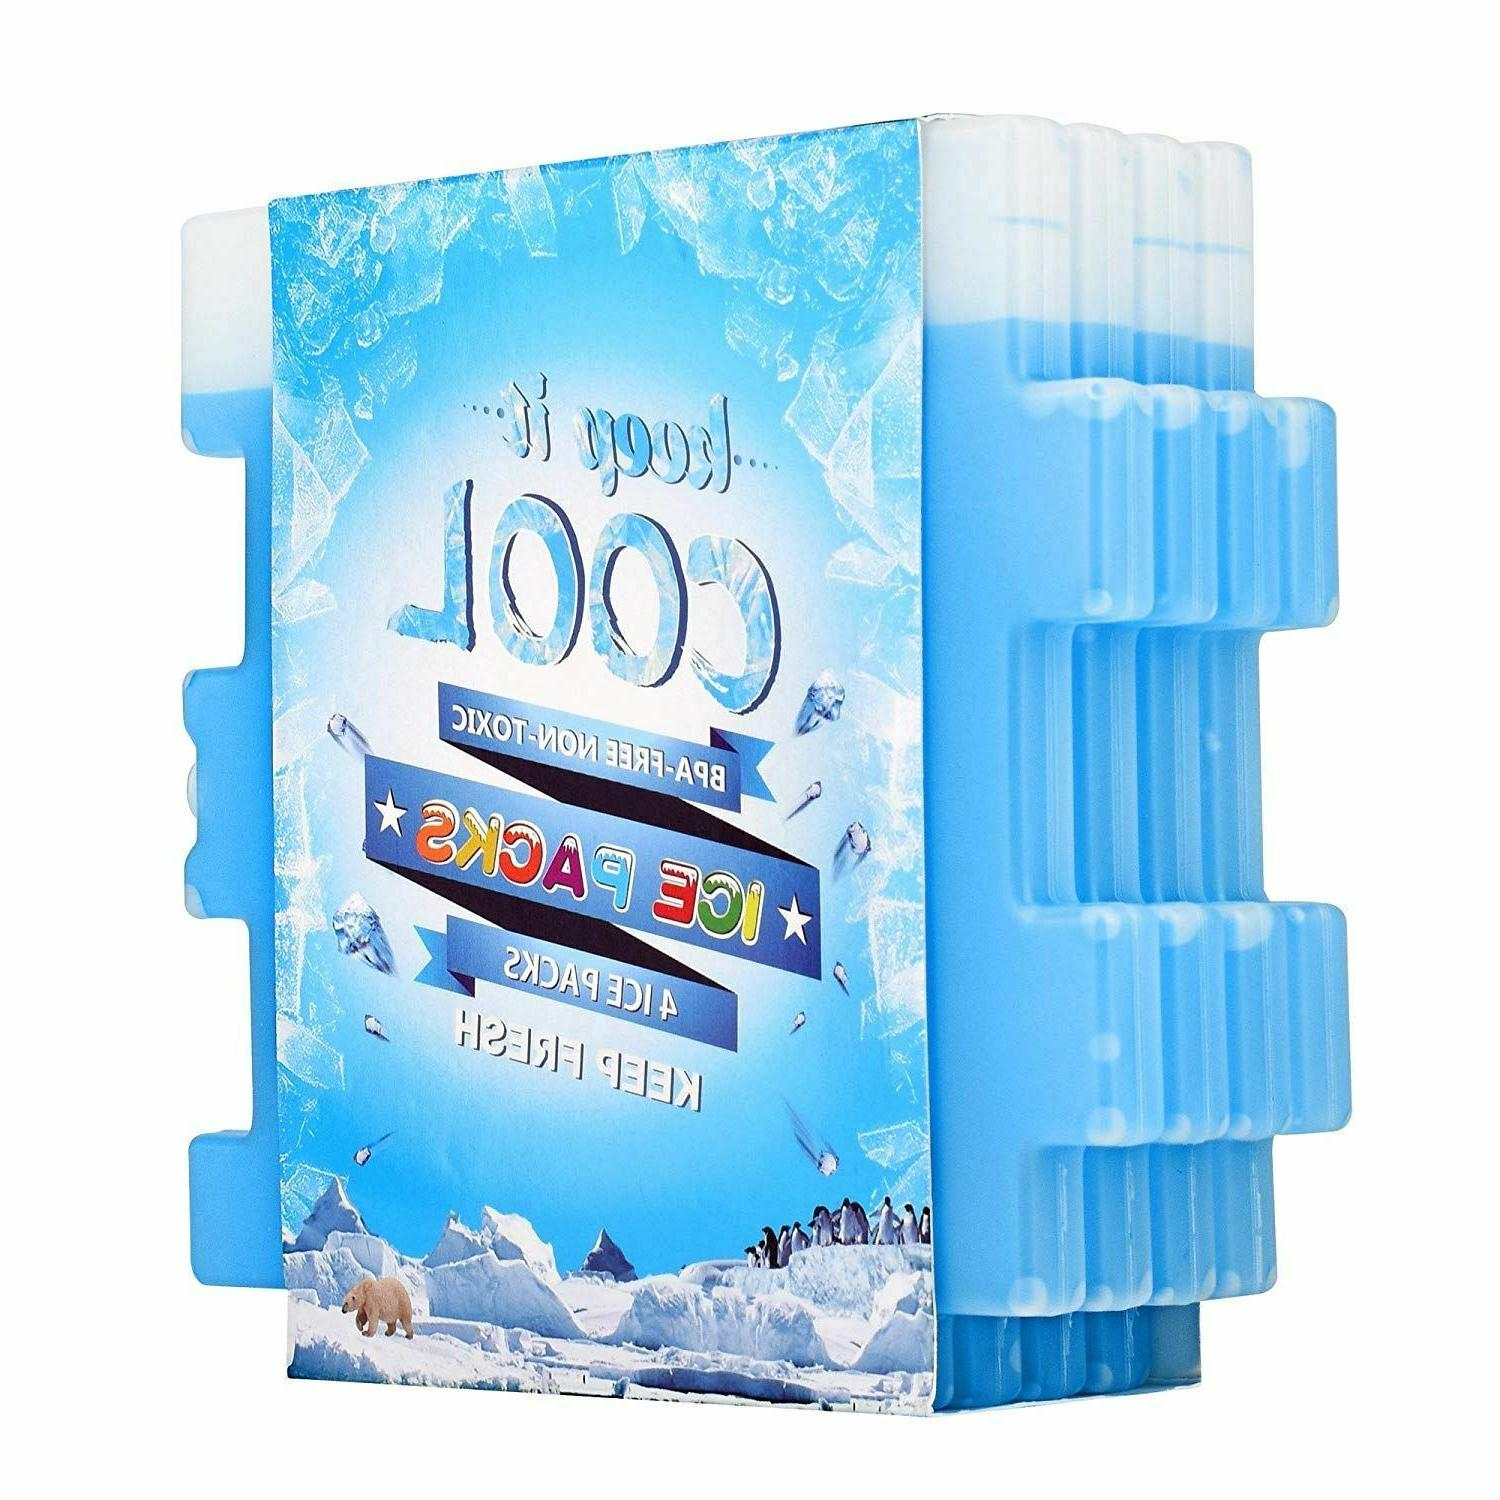 Ice Packs Set Of 4 Cool Pack For Lunch Box Freezer Bags & Co